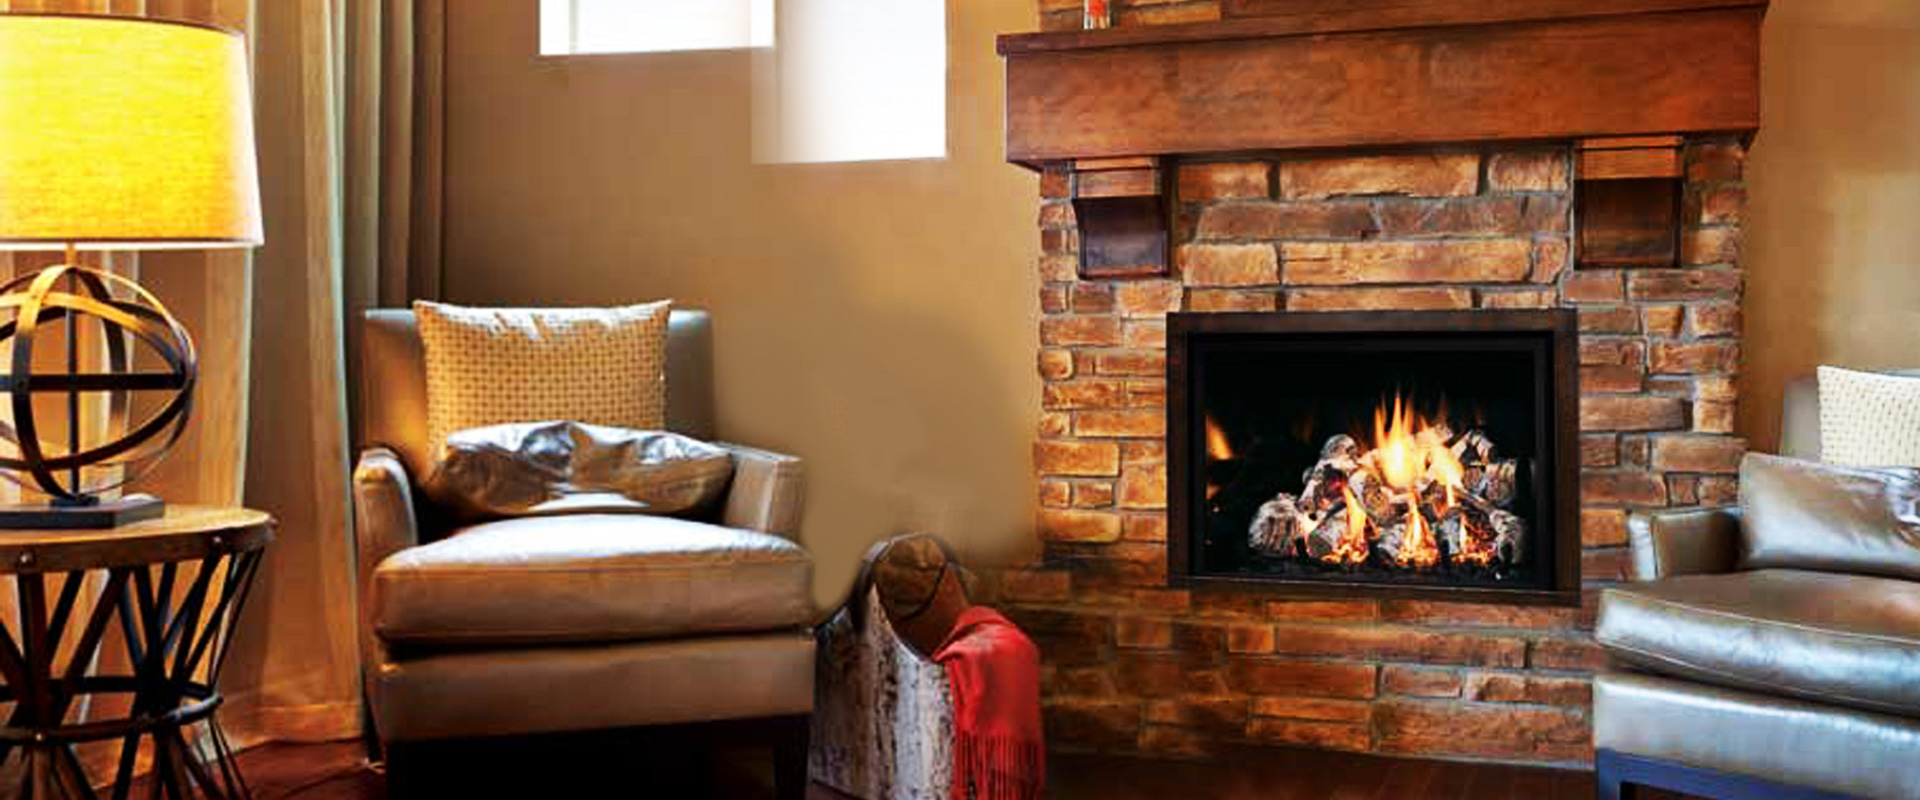 From Contemporary To Clic They Have The Perfect Style For Your Home Michigan Fireplace And Barbeque